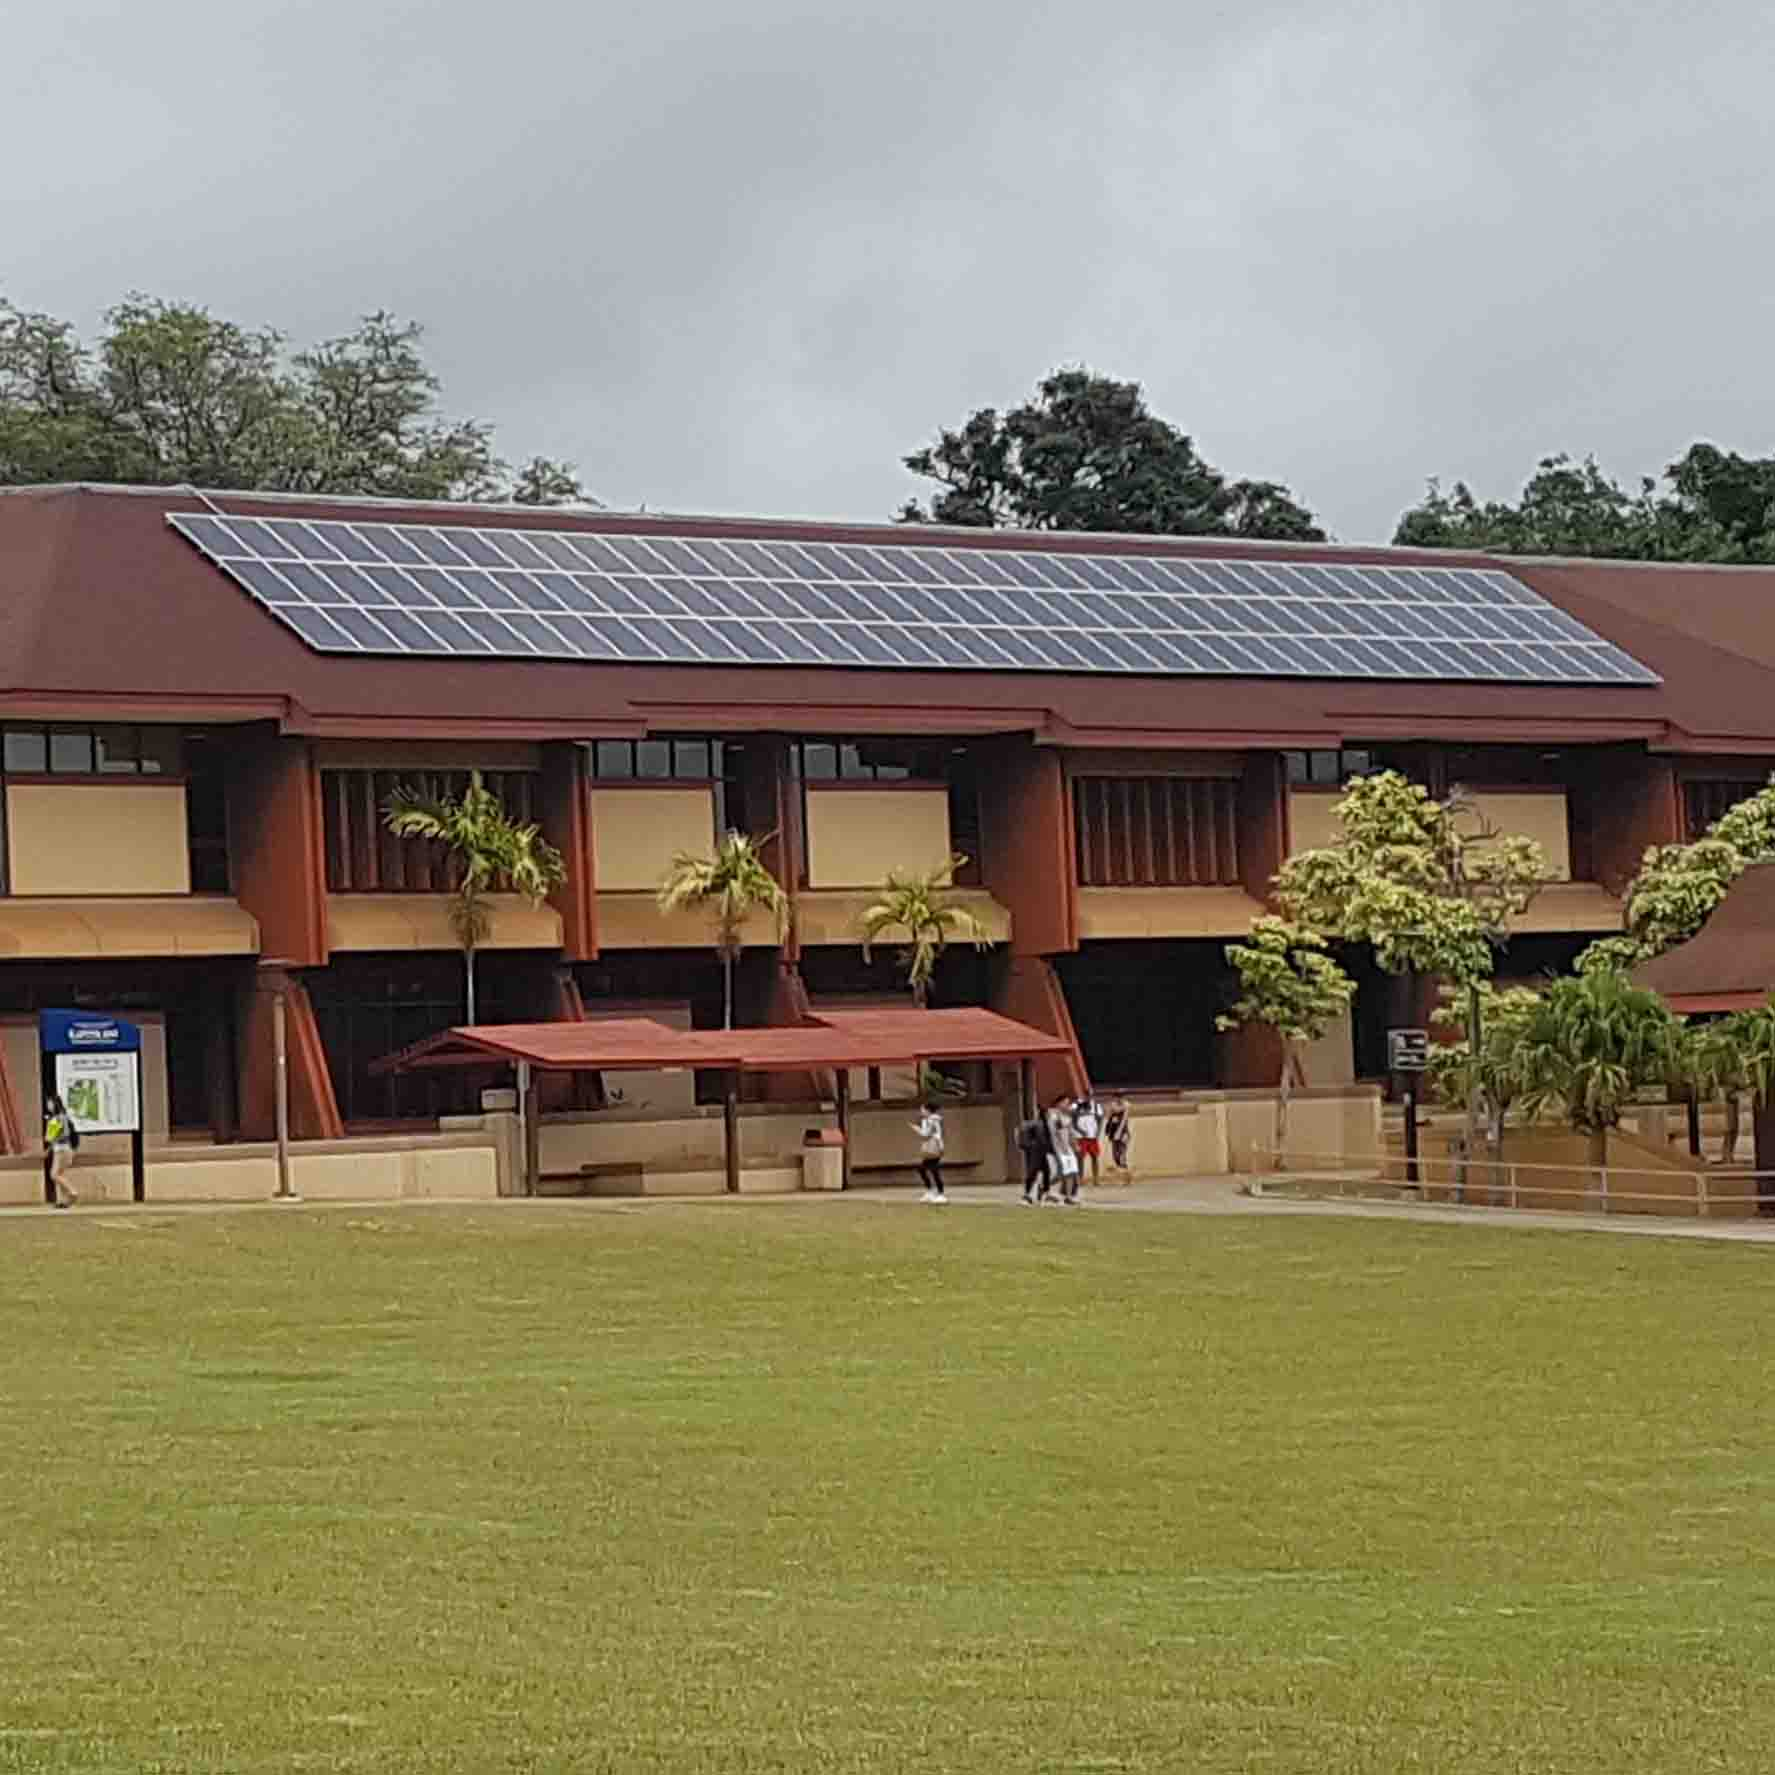 Lama Library rooftop solar array